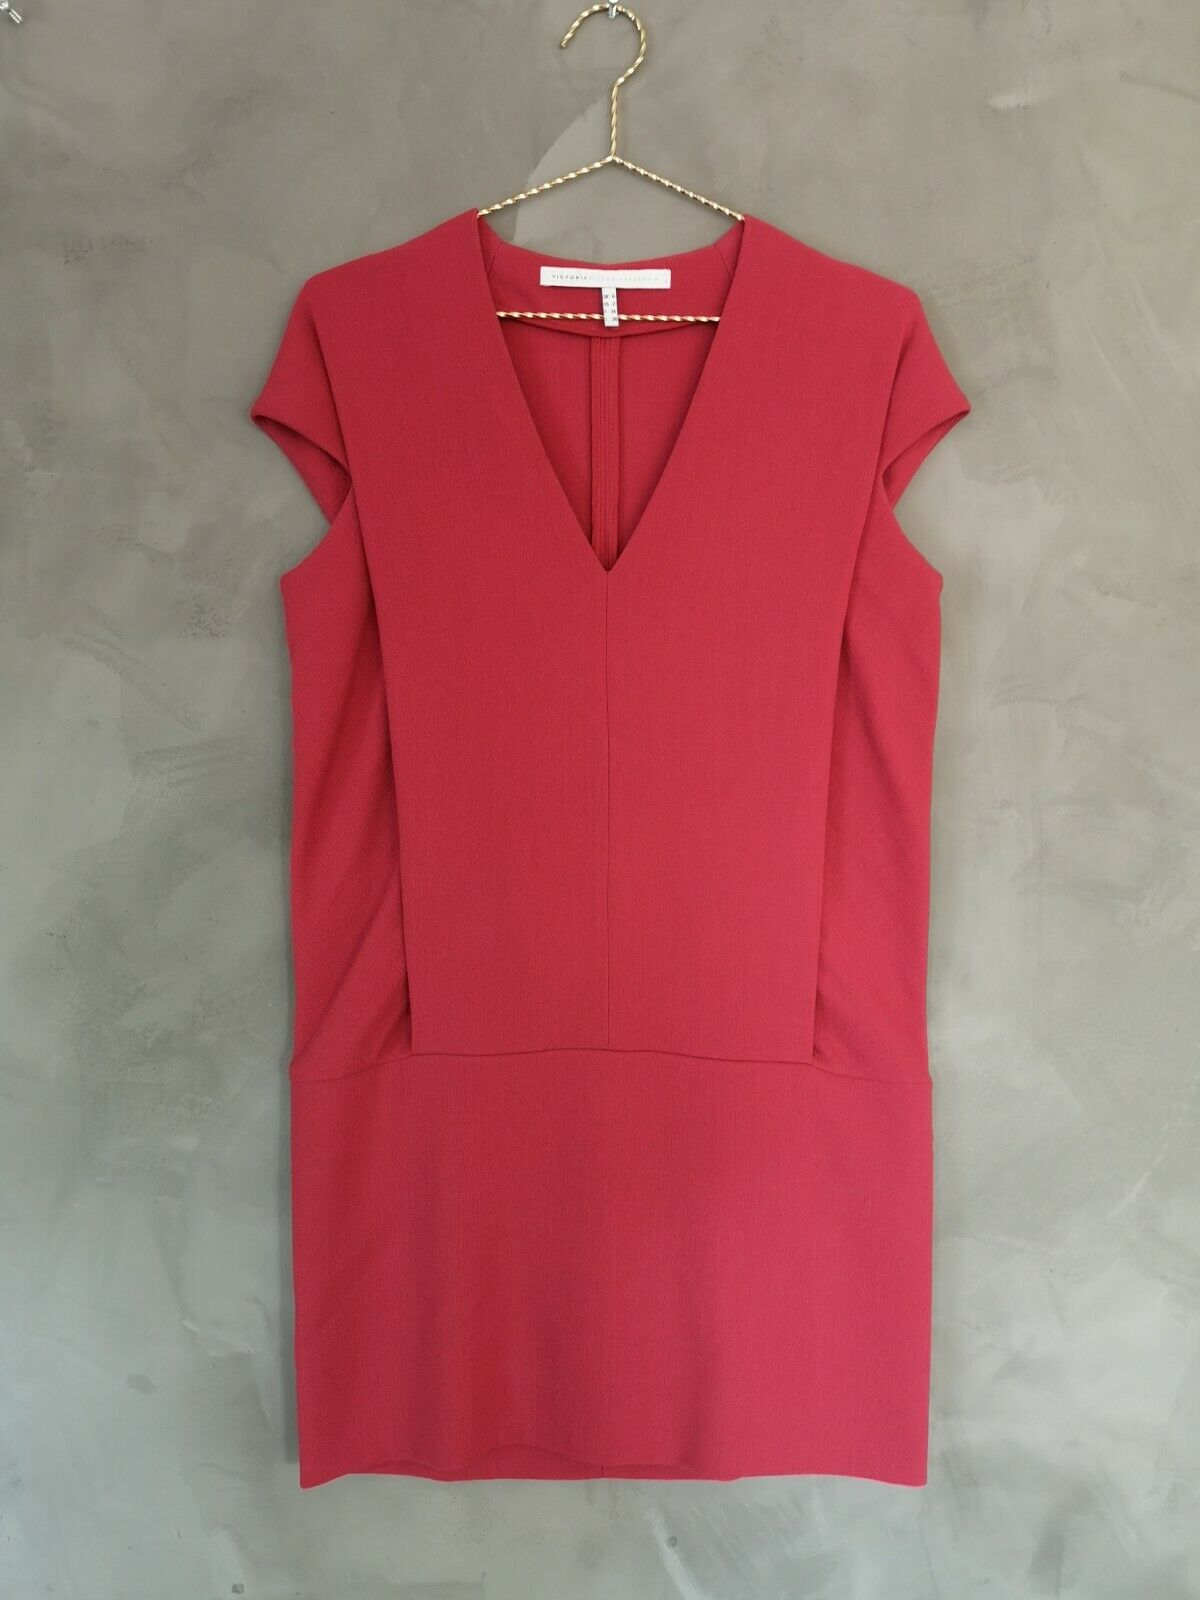 Victoria Beckham Dark rot Wool Crepe Crepe Crepe Shift Dress DE 34 UK 6 e9e